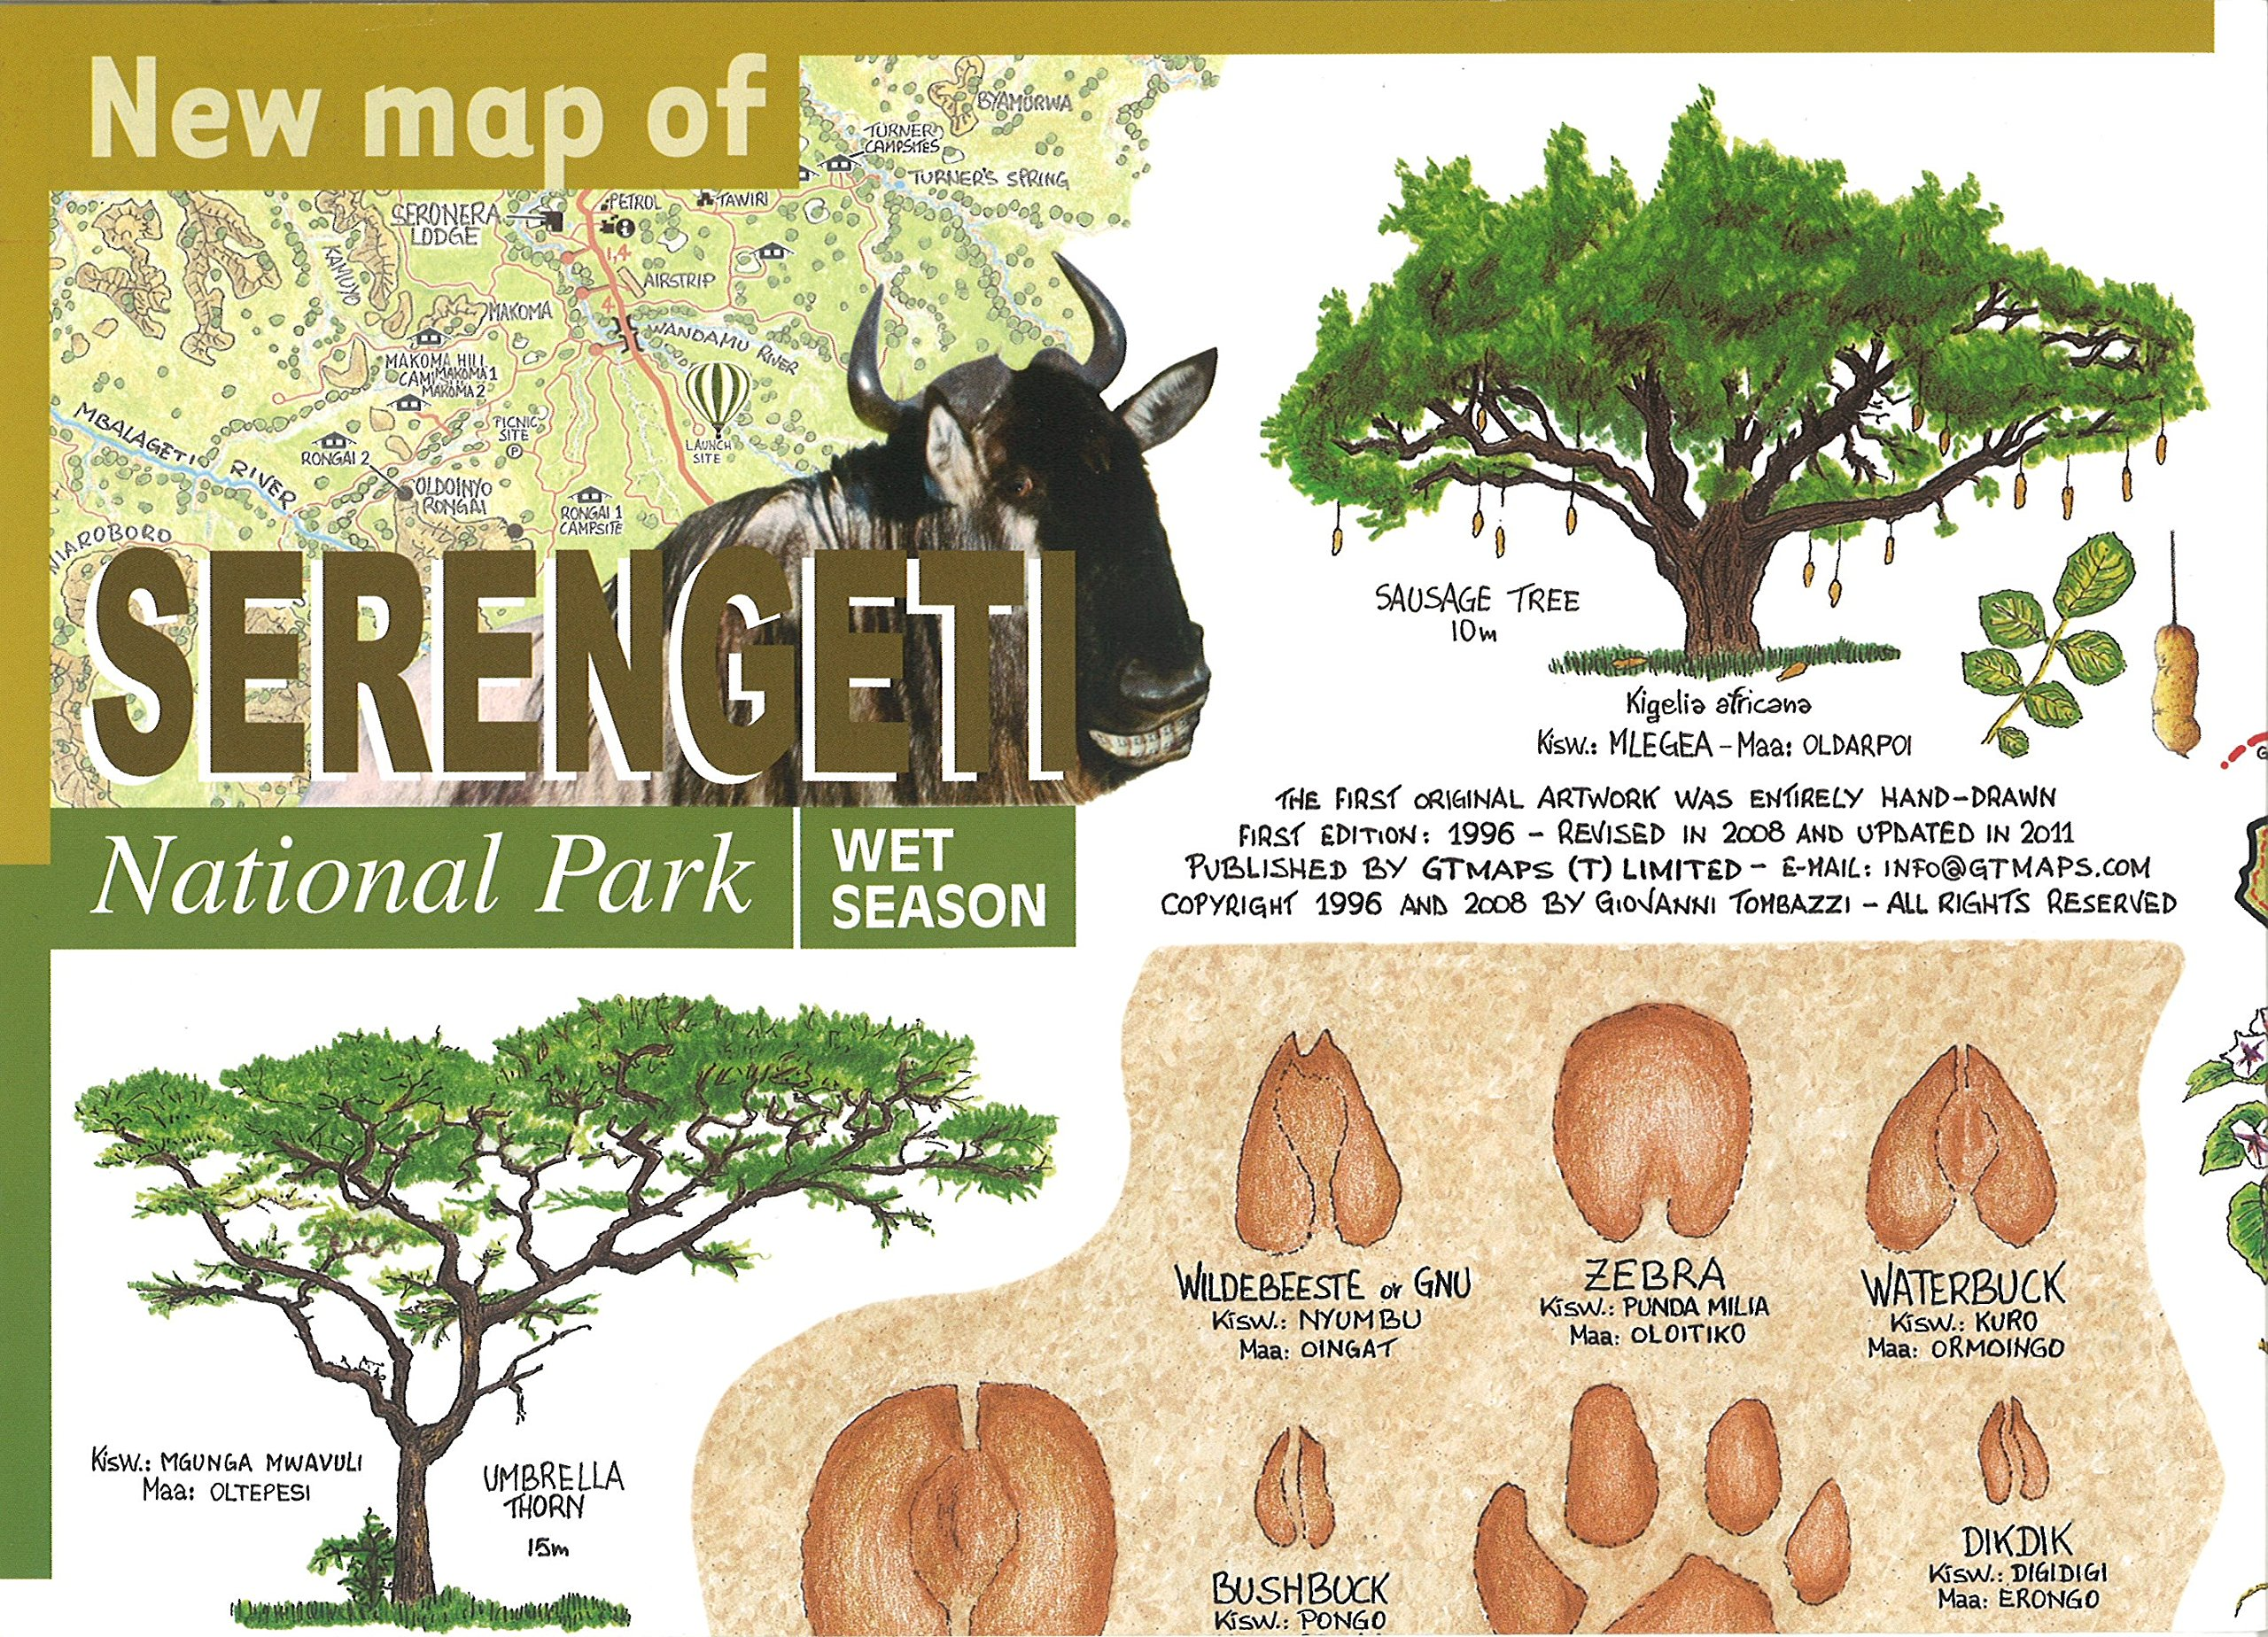 New Map of Serengeti National Park: Maco Editions LLC ... Serengeti Map on kilimanjaro map, tarangire national park, lake tanganyika map, serengeti national park, cape of good hope map, ngorongoro crater map, kalahari map, himalayas map, sahel map, zambezi river map, congo river map, niger river map, sinai peninsula map, great victorian desert map, mount kilimanjaro, africa map, ngorongoro conservation area, mara river, horn of africa, lake nyasa map, lake victoria map, great rift valley map, victoria falls map, tanzania map, nile map, atlas mountains map,